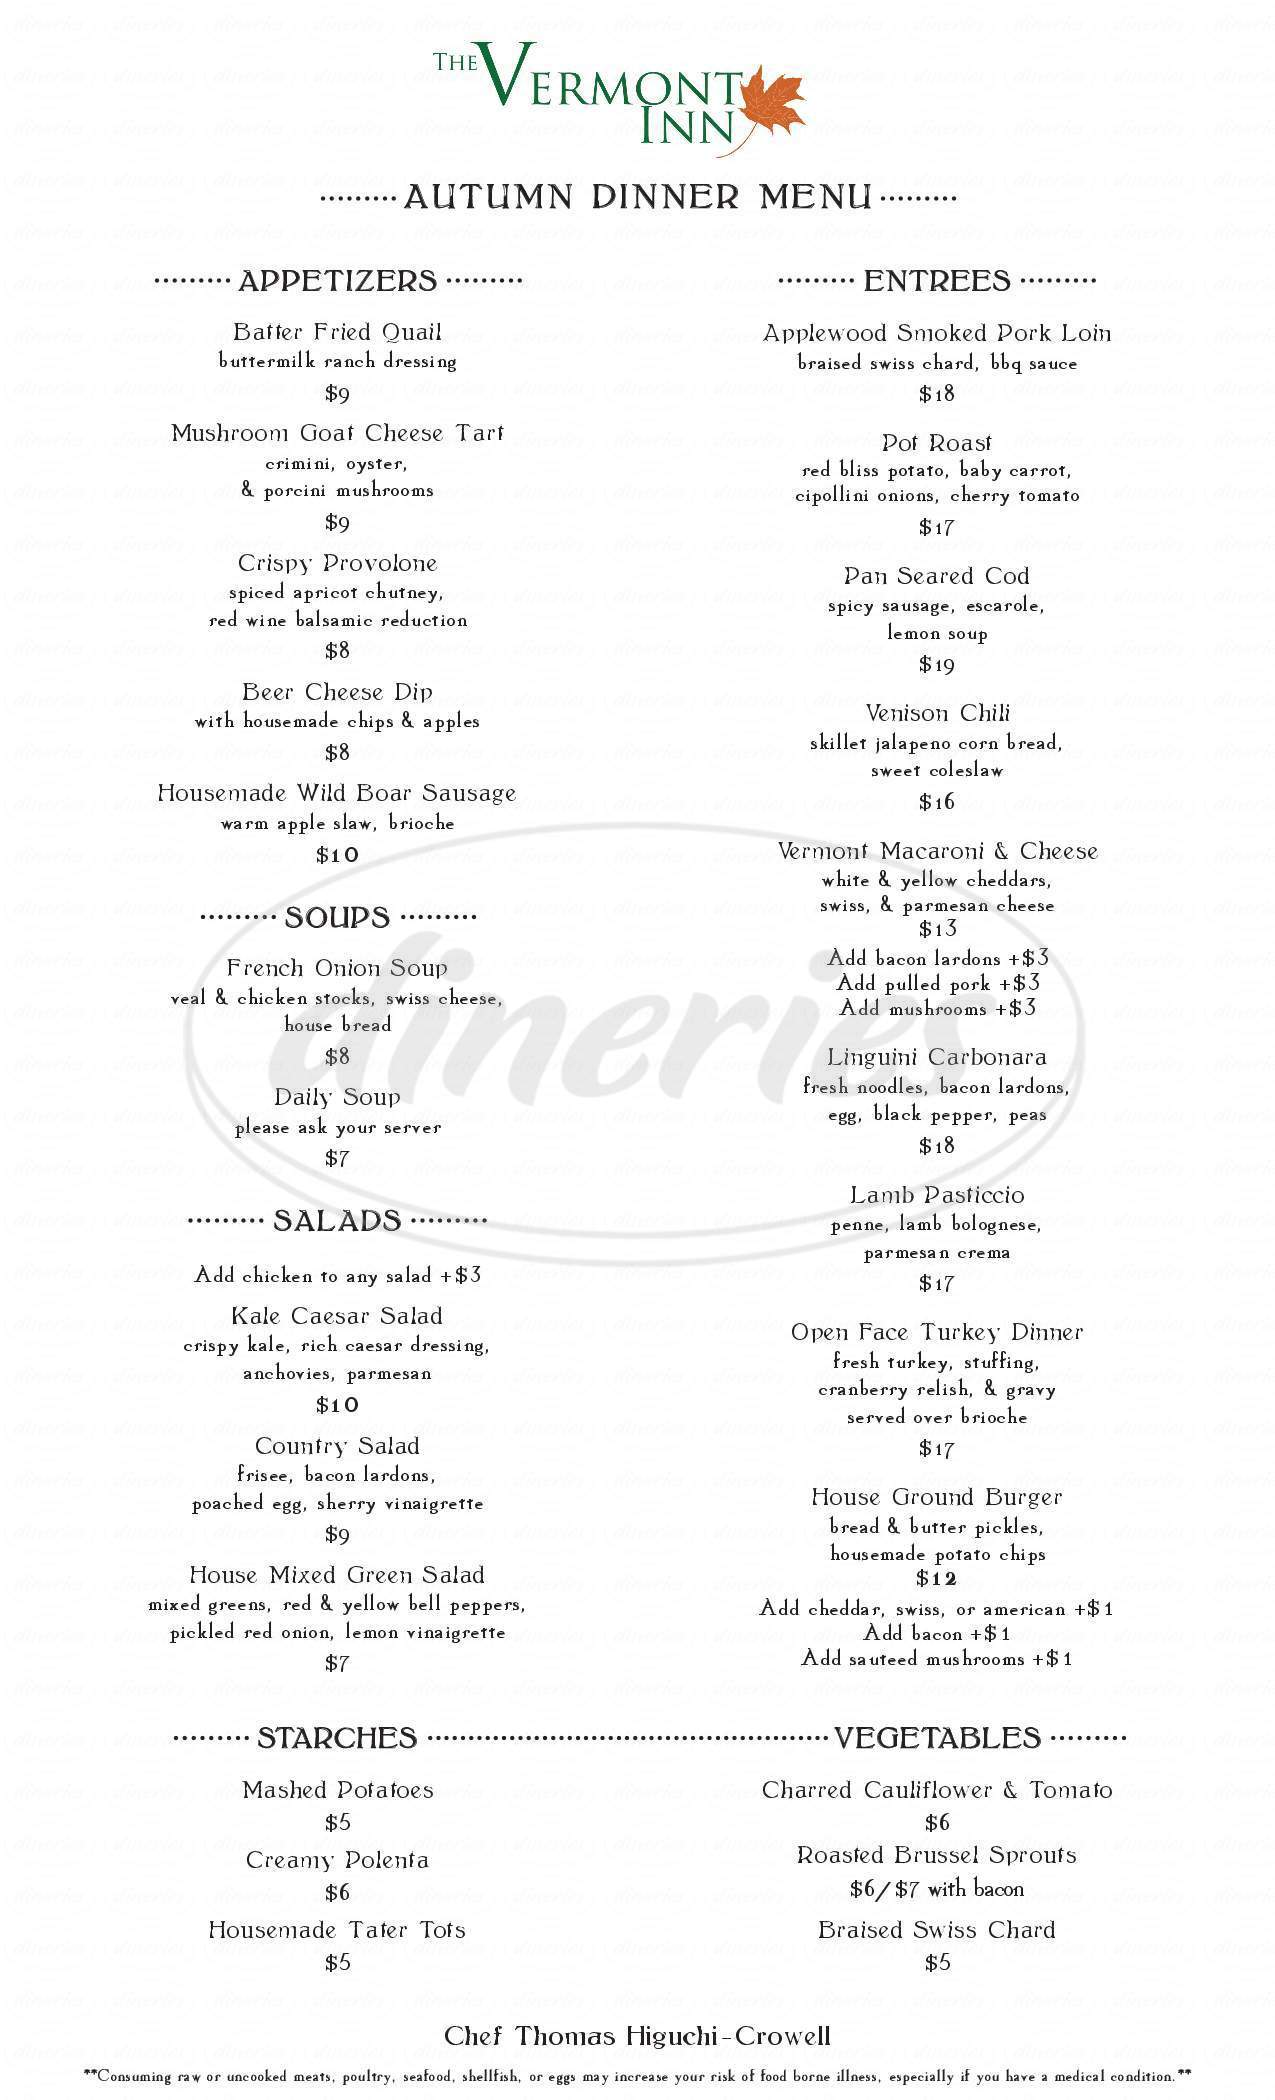 menu for The Vermont Inn